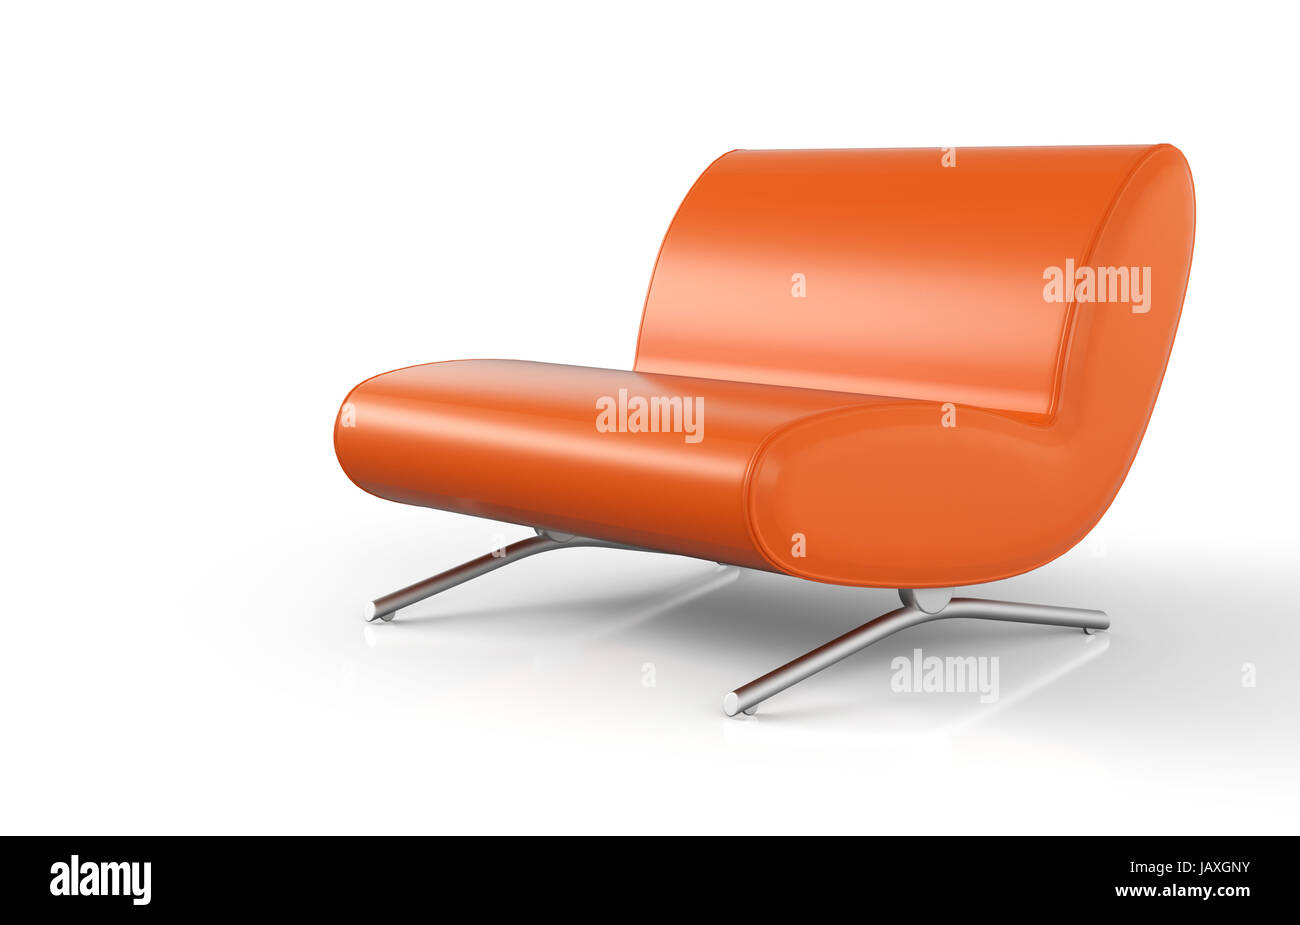 Designer Sessel Ergonomischer Designer Sessel Orange Stock Photo 144413415 Alamy